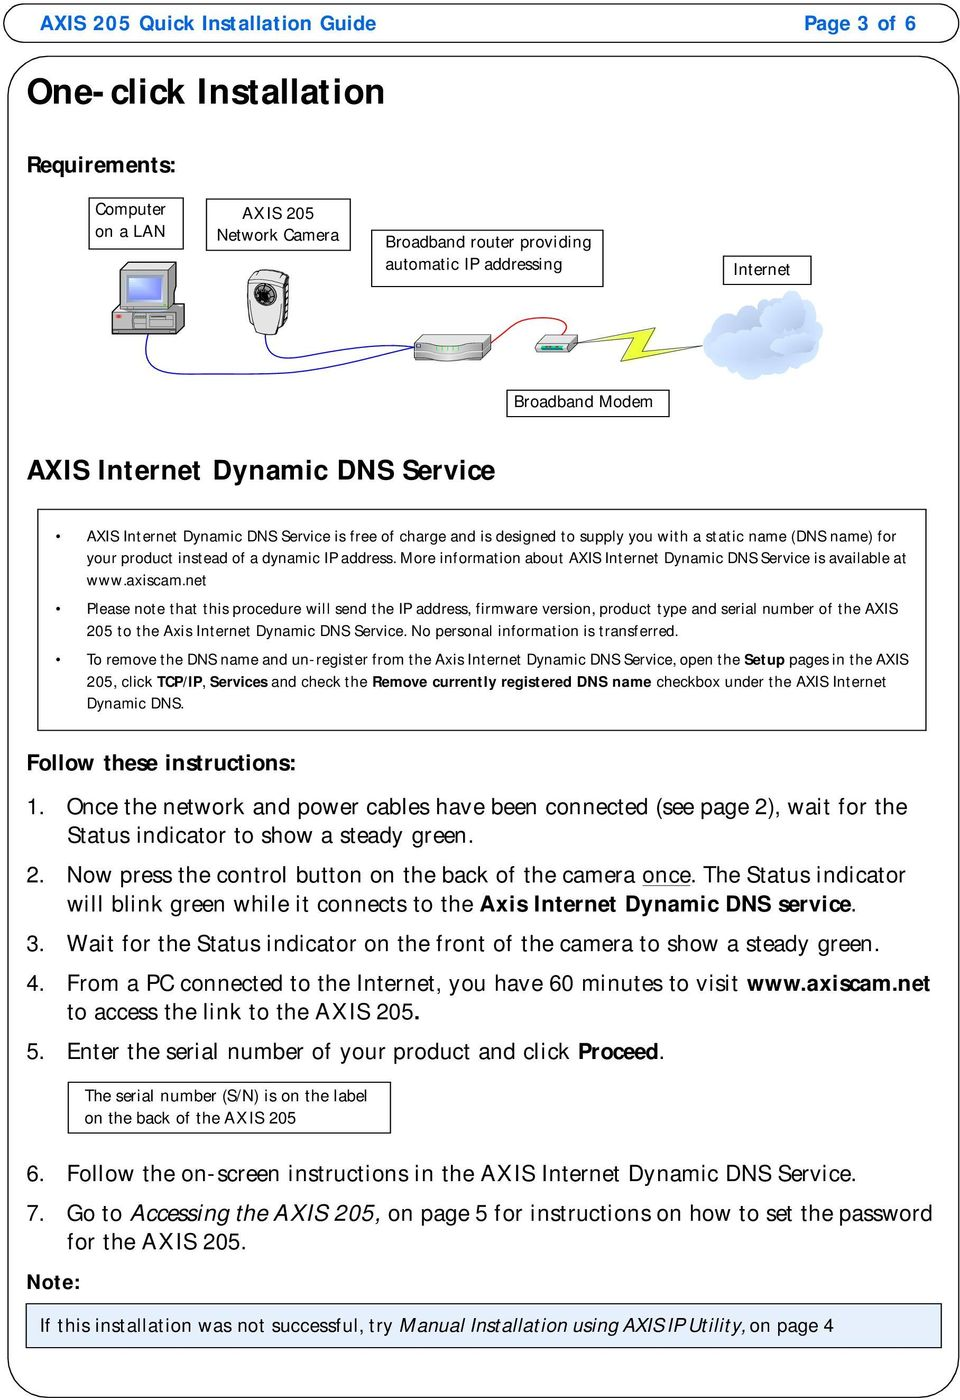 address. More information about AXIS Internet Dynamic DNS Service is available at www.axiscam.